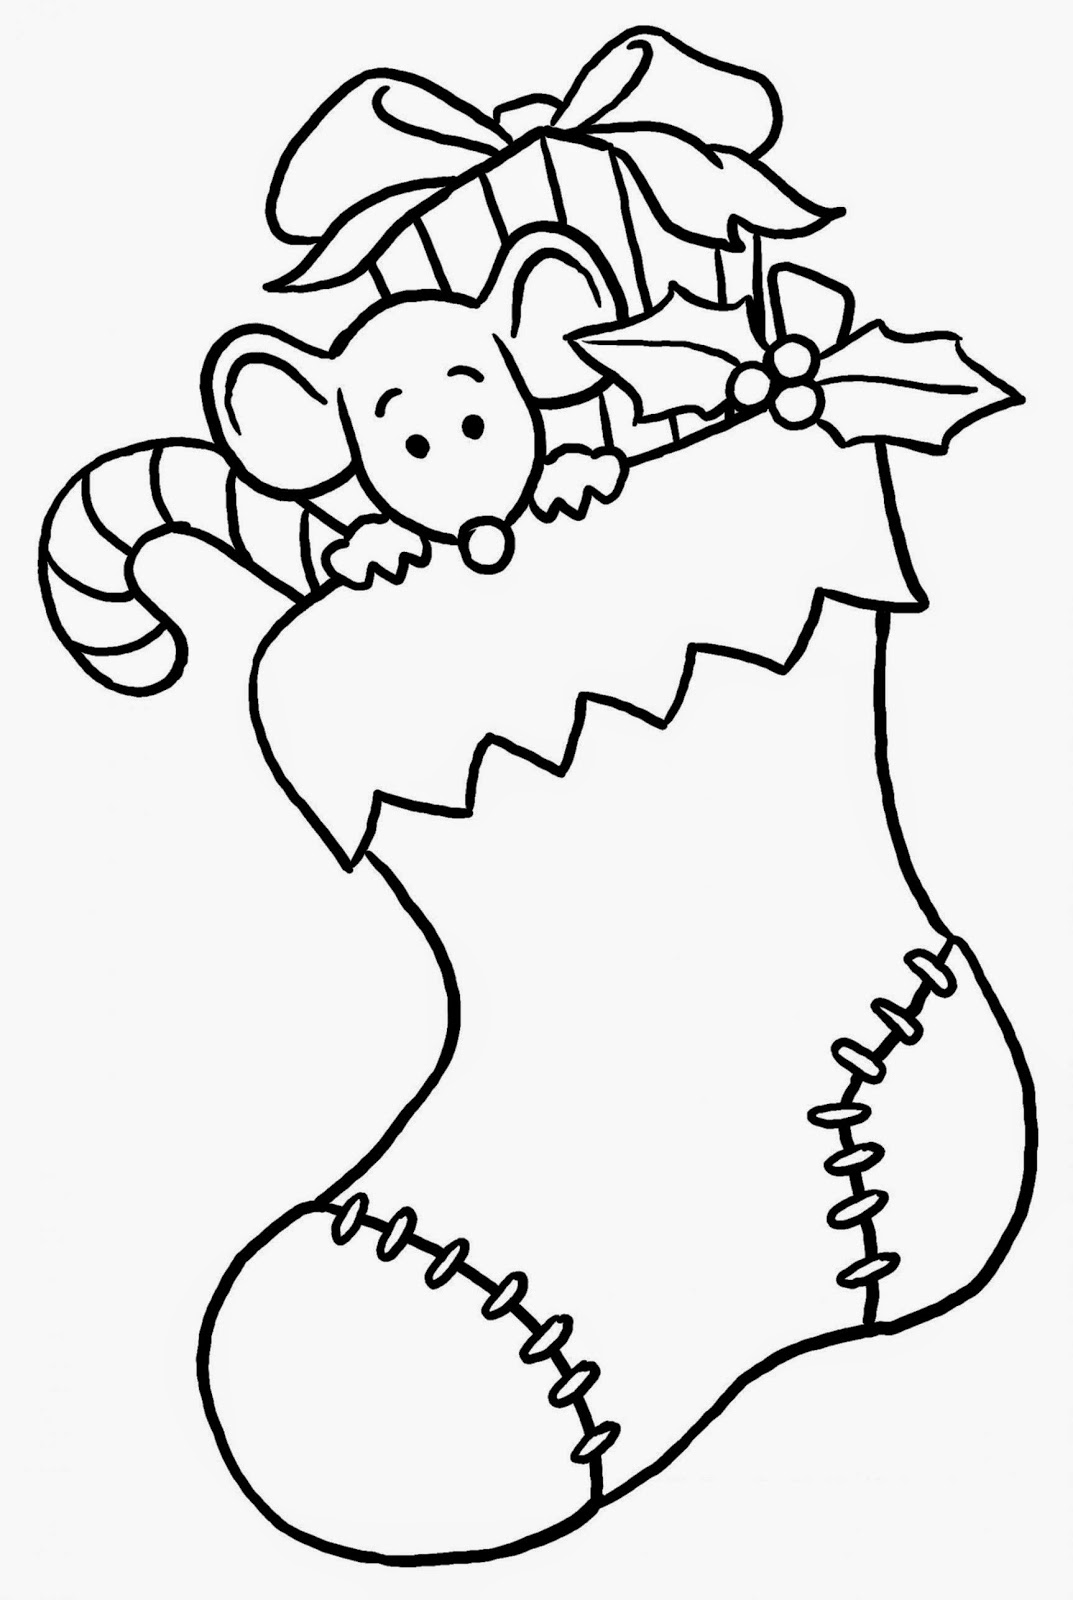 Free Printable Preschool Coloring Pages Best Coloring Coloring Pictures For Kindergarten